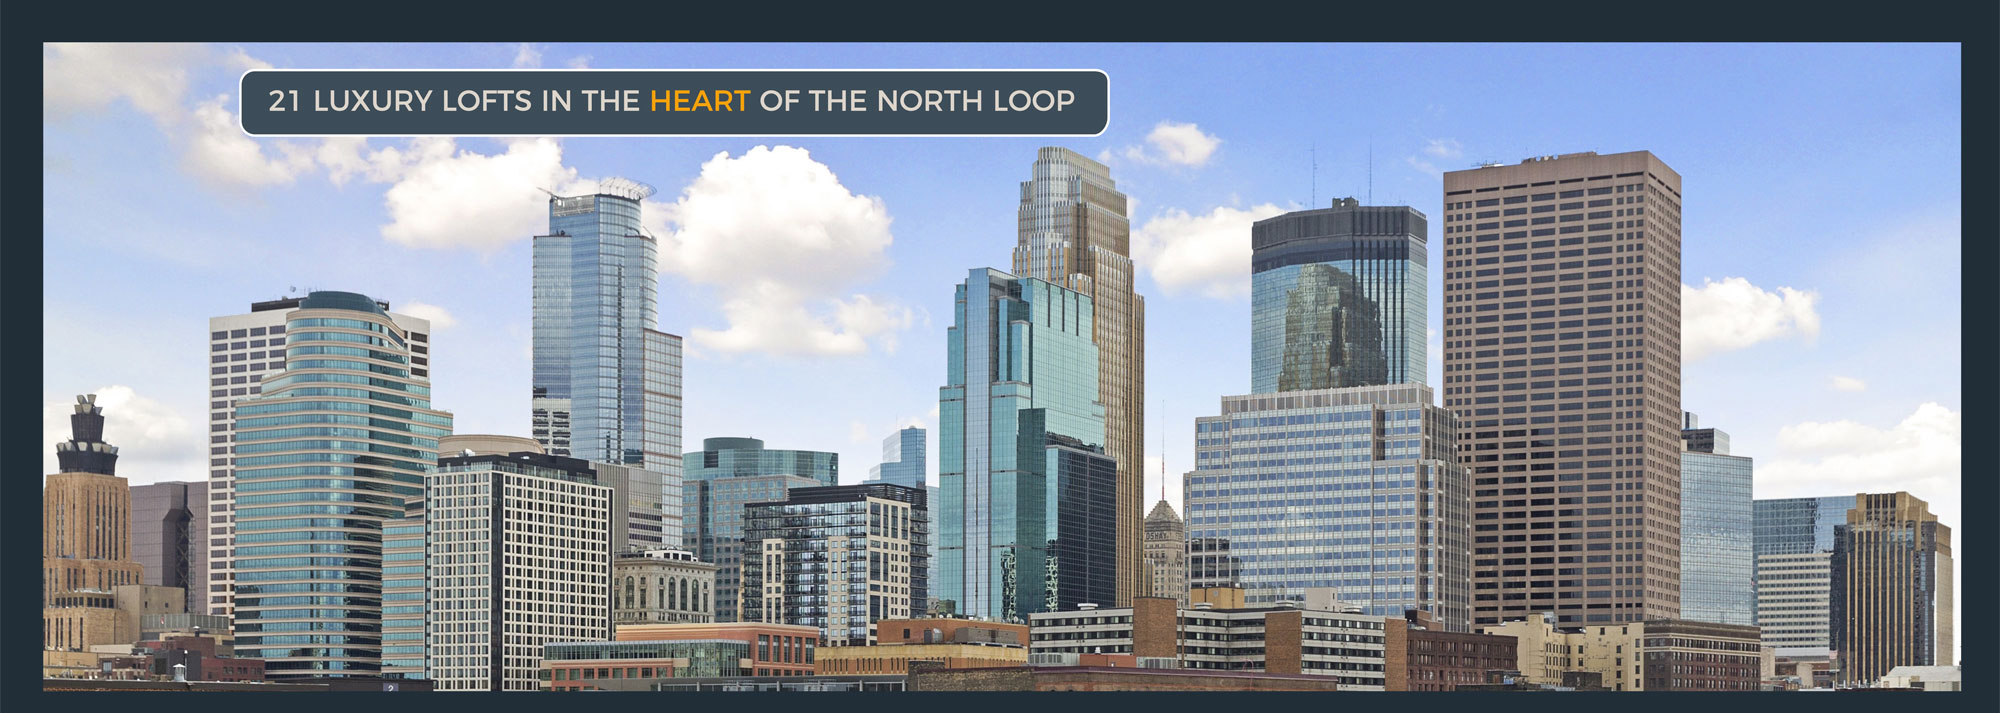 smyth loft luxury apartment homes luxury lofts in the heart of the north loop minneapolis mn